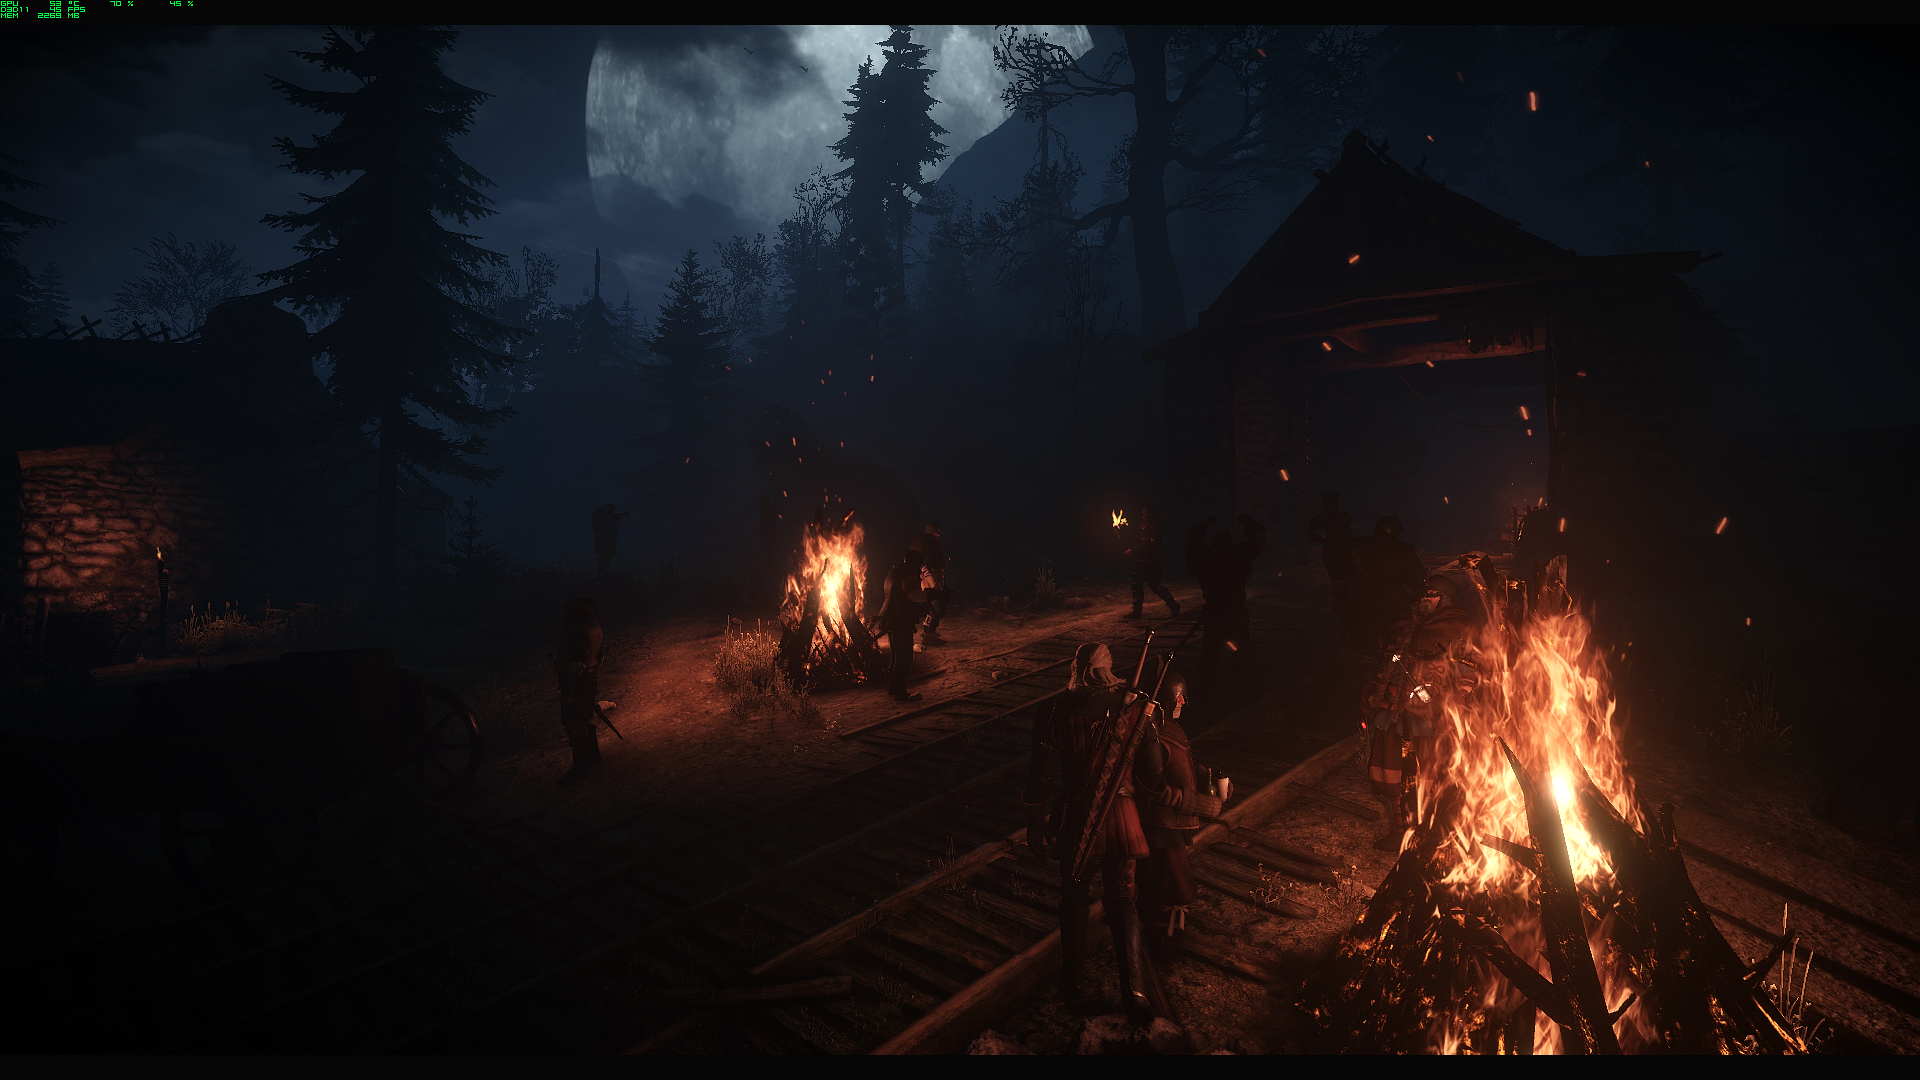 By the fires at The Witcher 3 Nexus - Mods and community